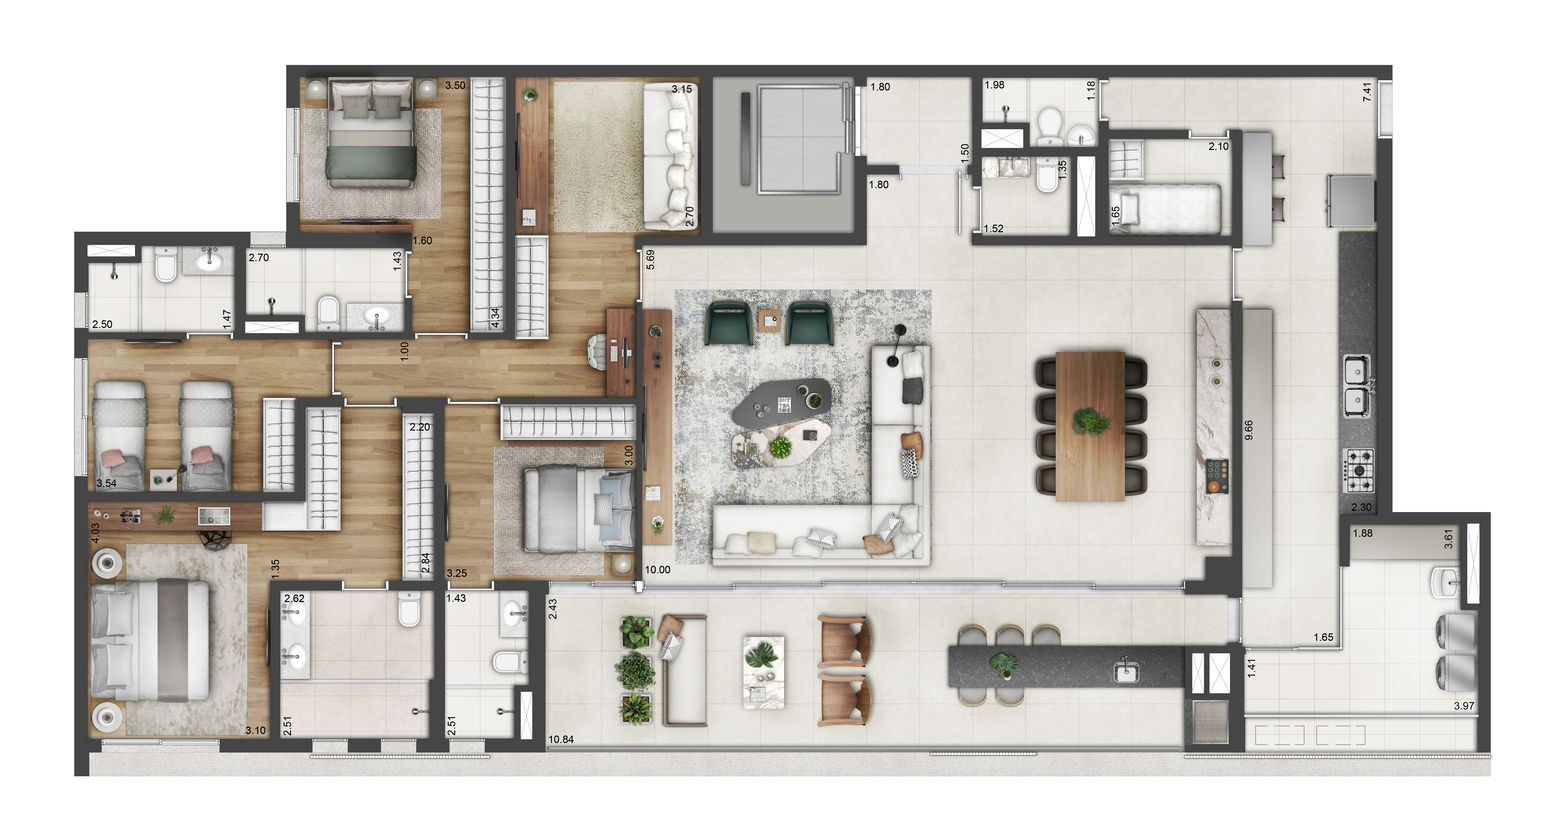 Planta do Arbo Casas Verticais. floorplan